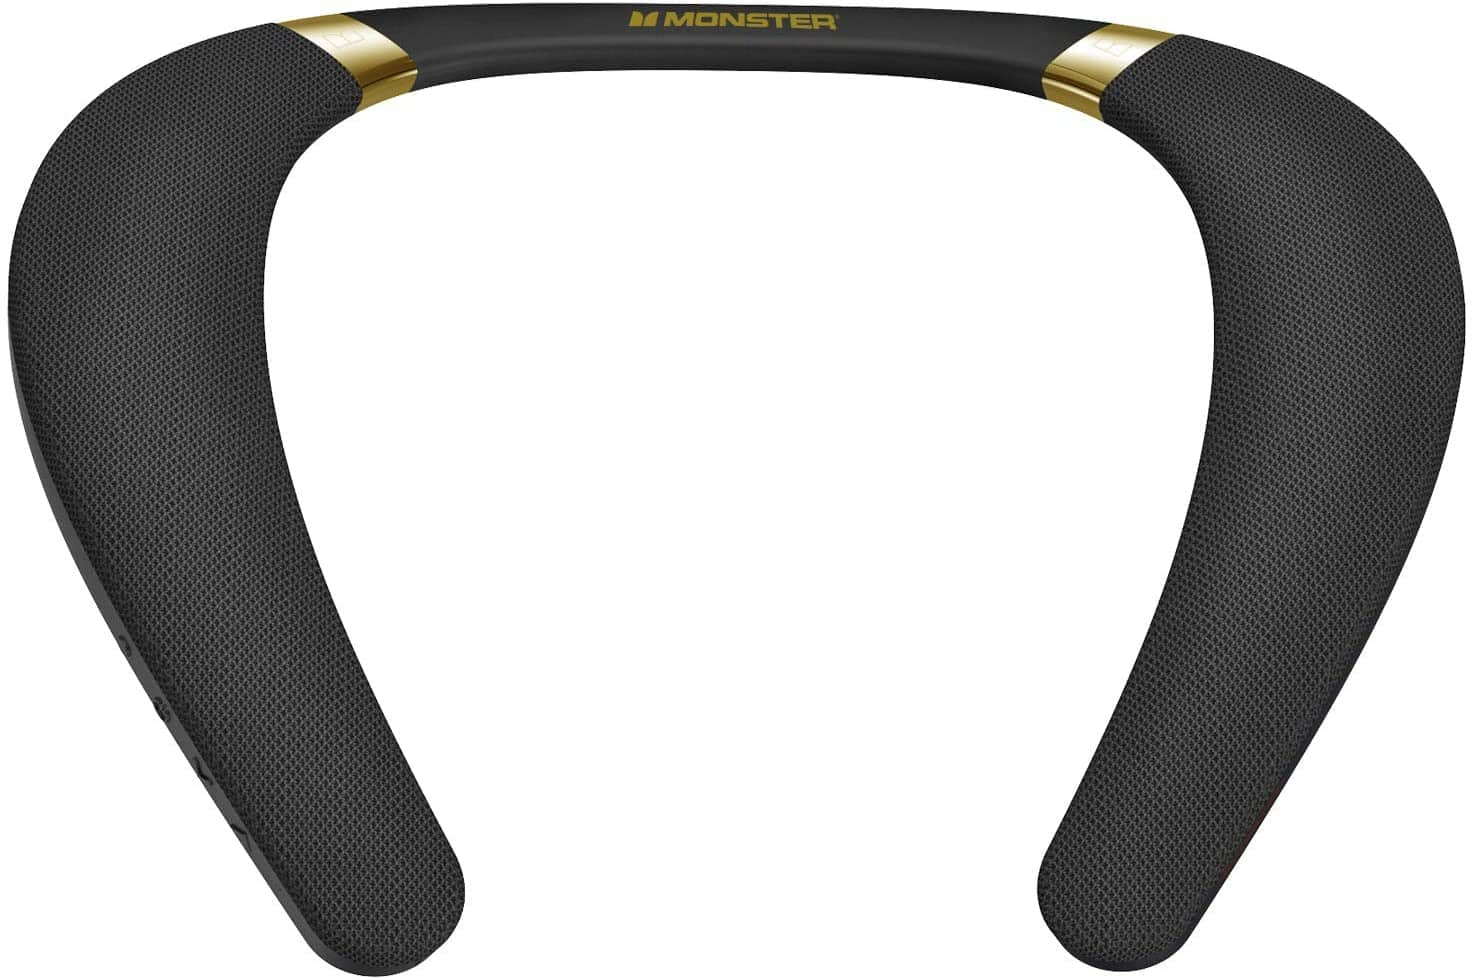 Monster Boomerang Neckband Bluetooth Speaker $34.99 (Reg. $89.99)